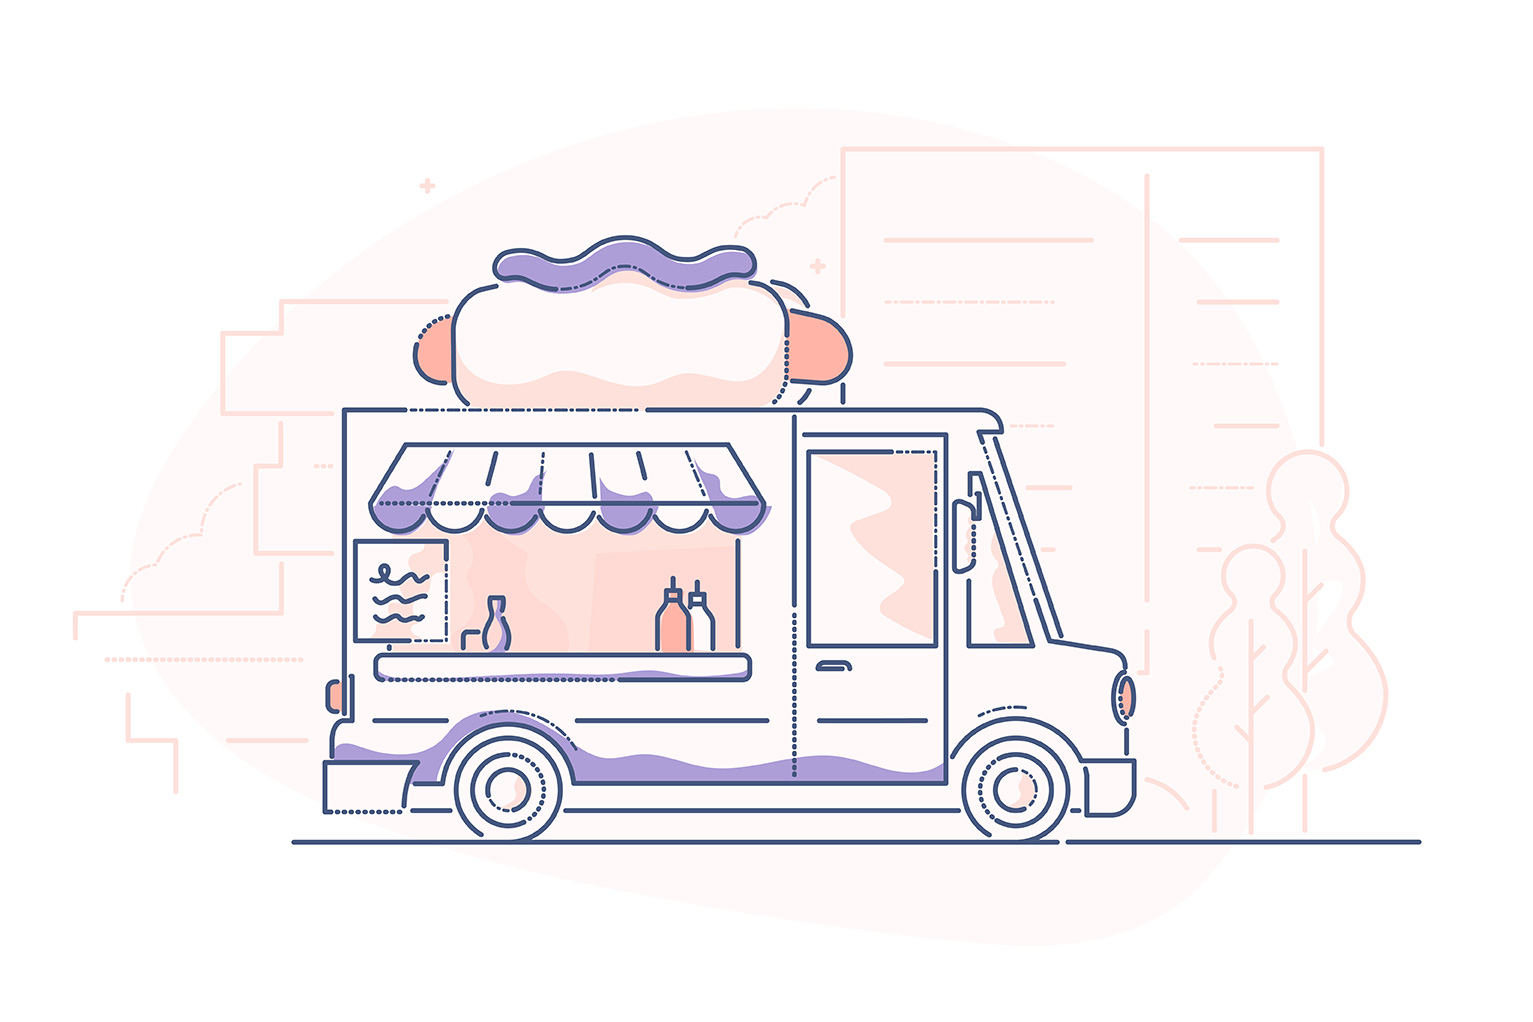 Food truck startup costs - illustration of hotdog food truck